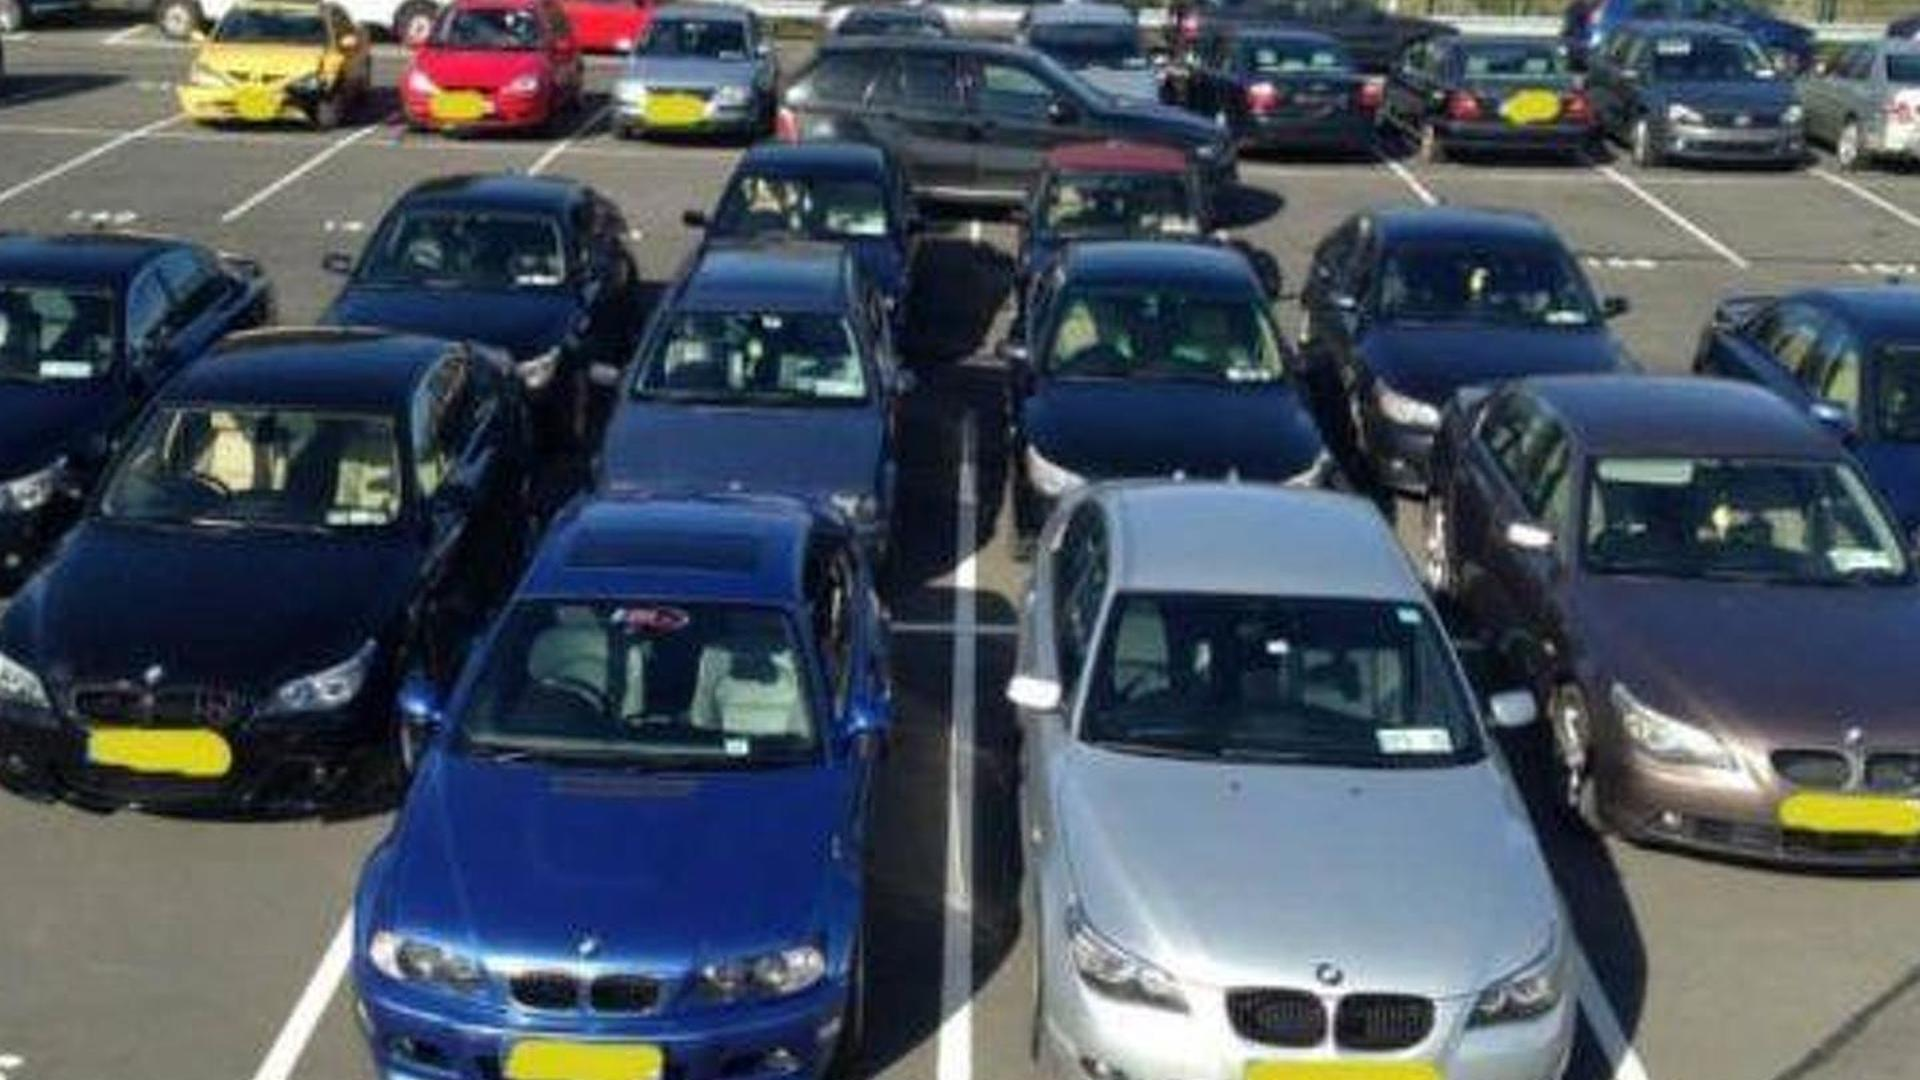 Irish police seizes 18 BMWs after these were registered as having smaller engines